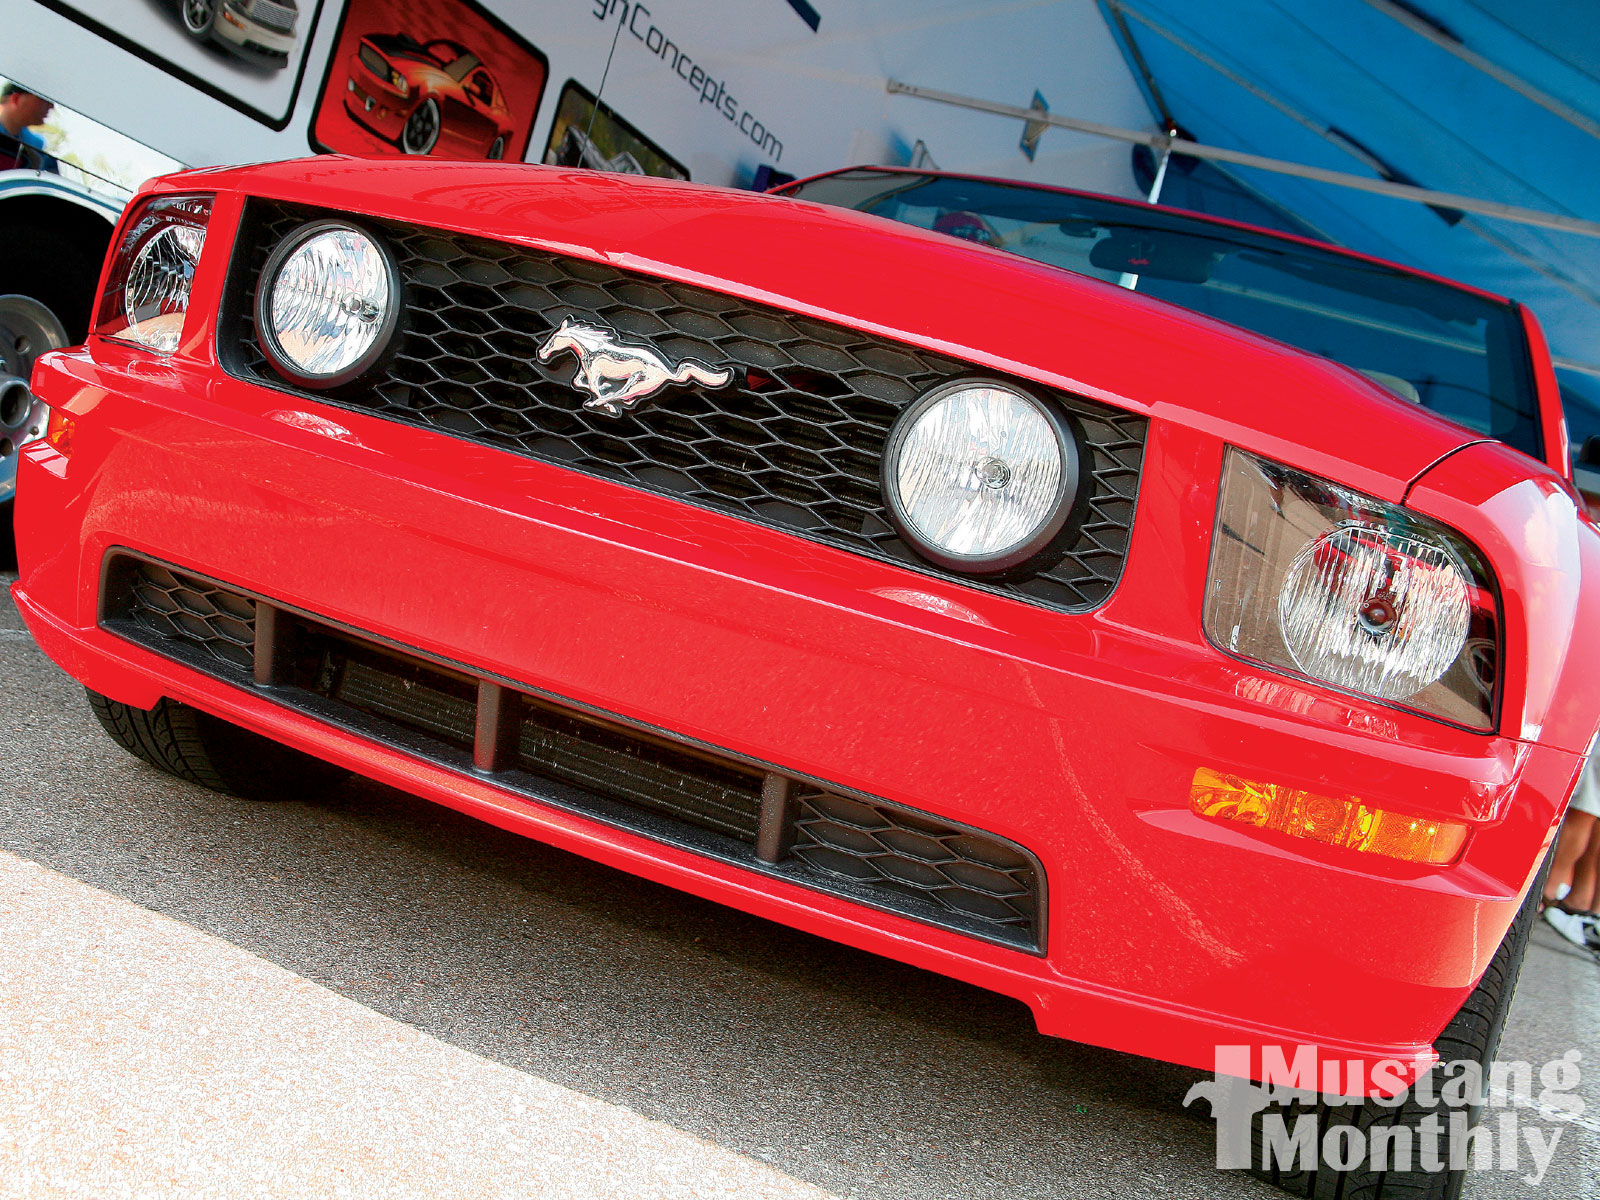 Mump 1001 05  05 S197 Mustang Gt Stock Front End Nose